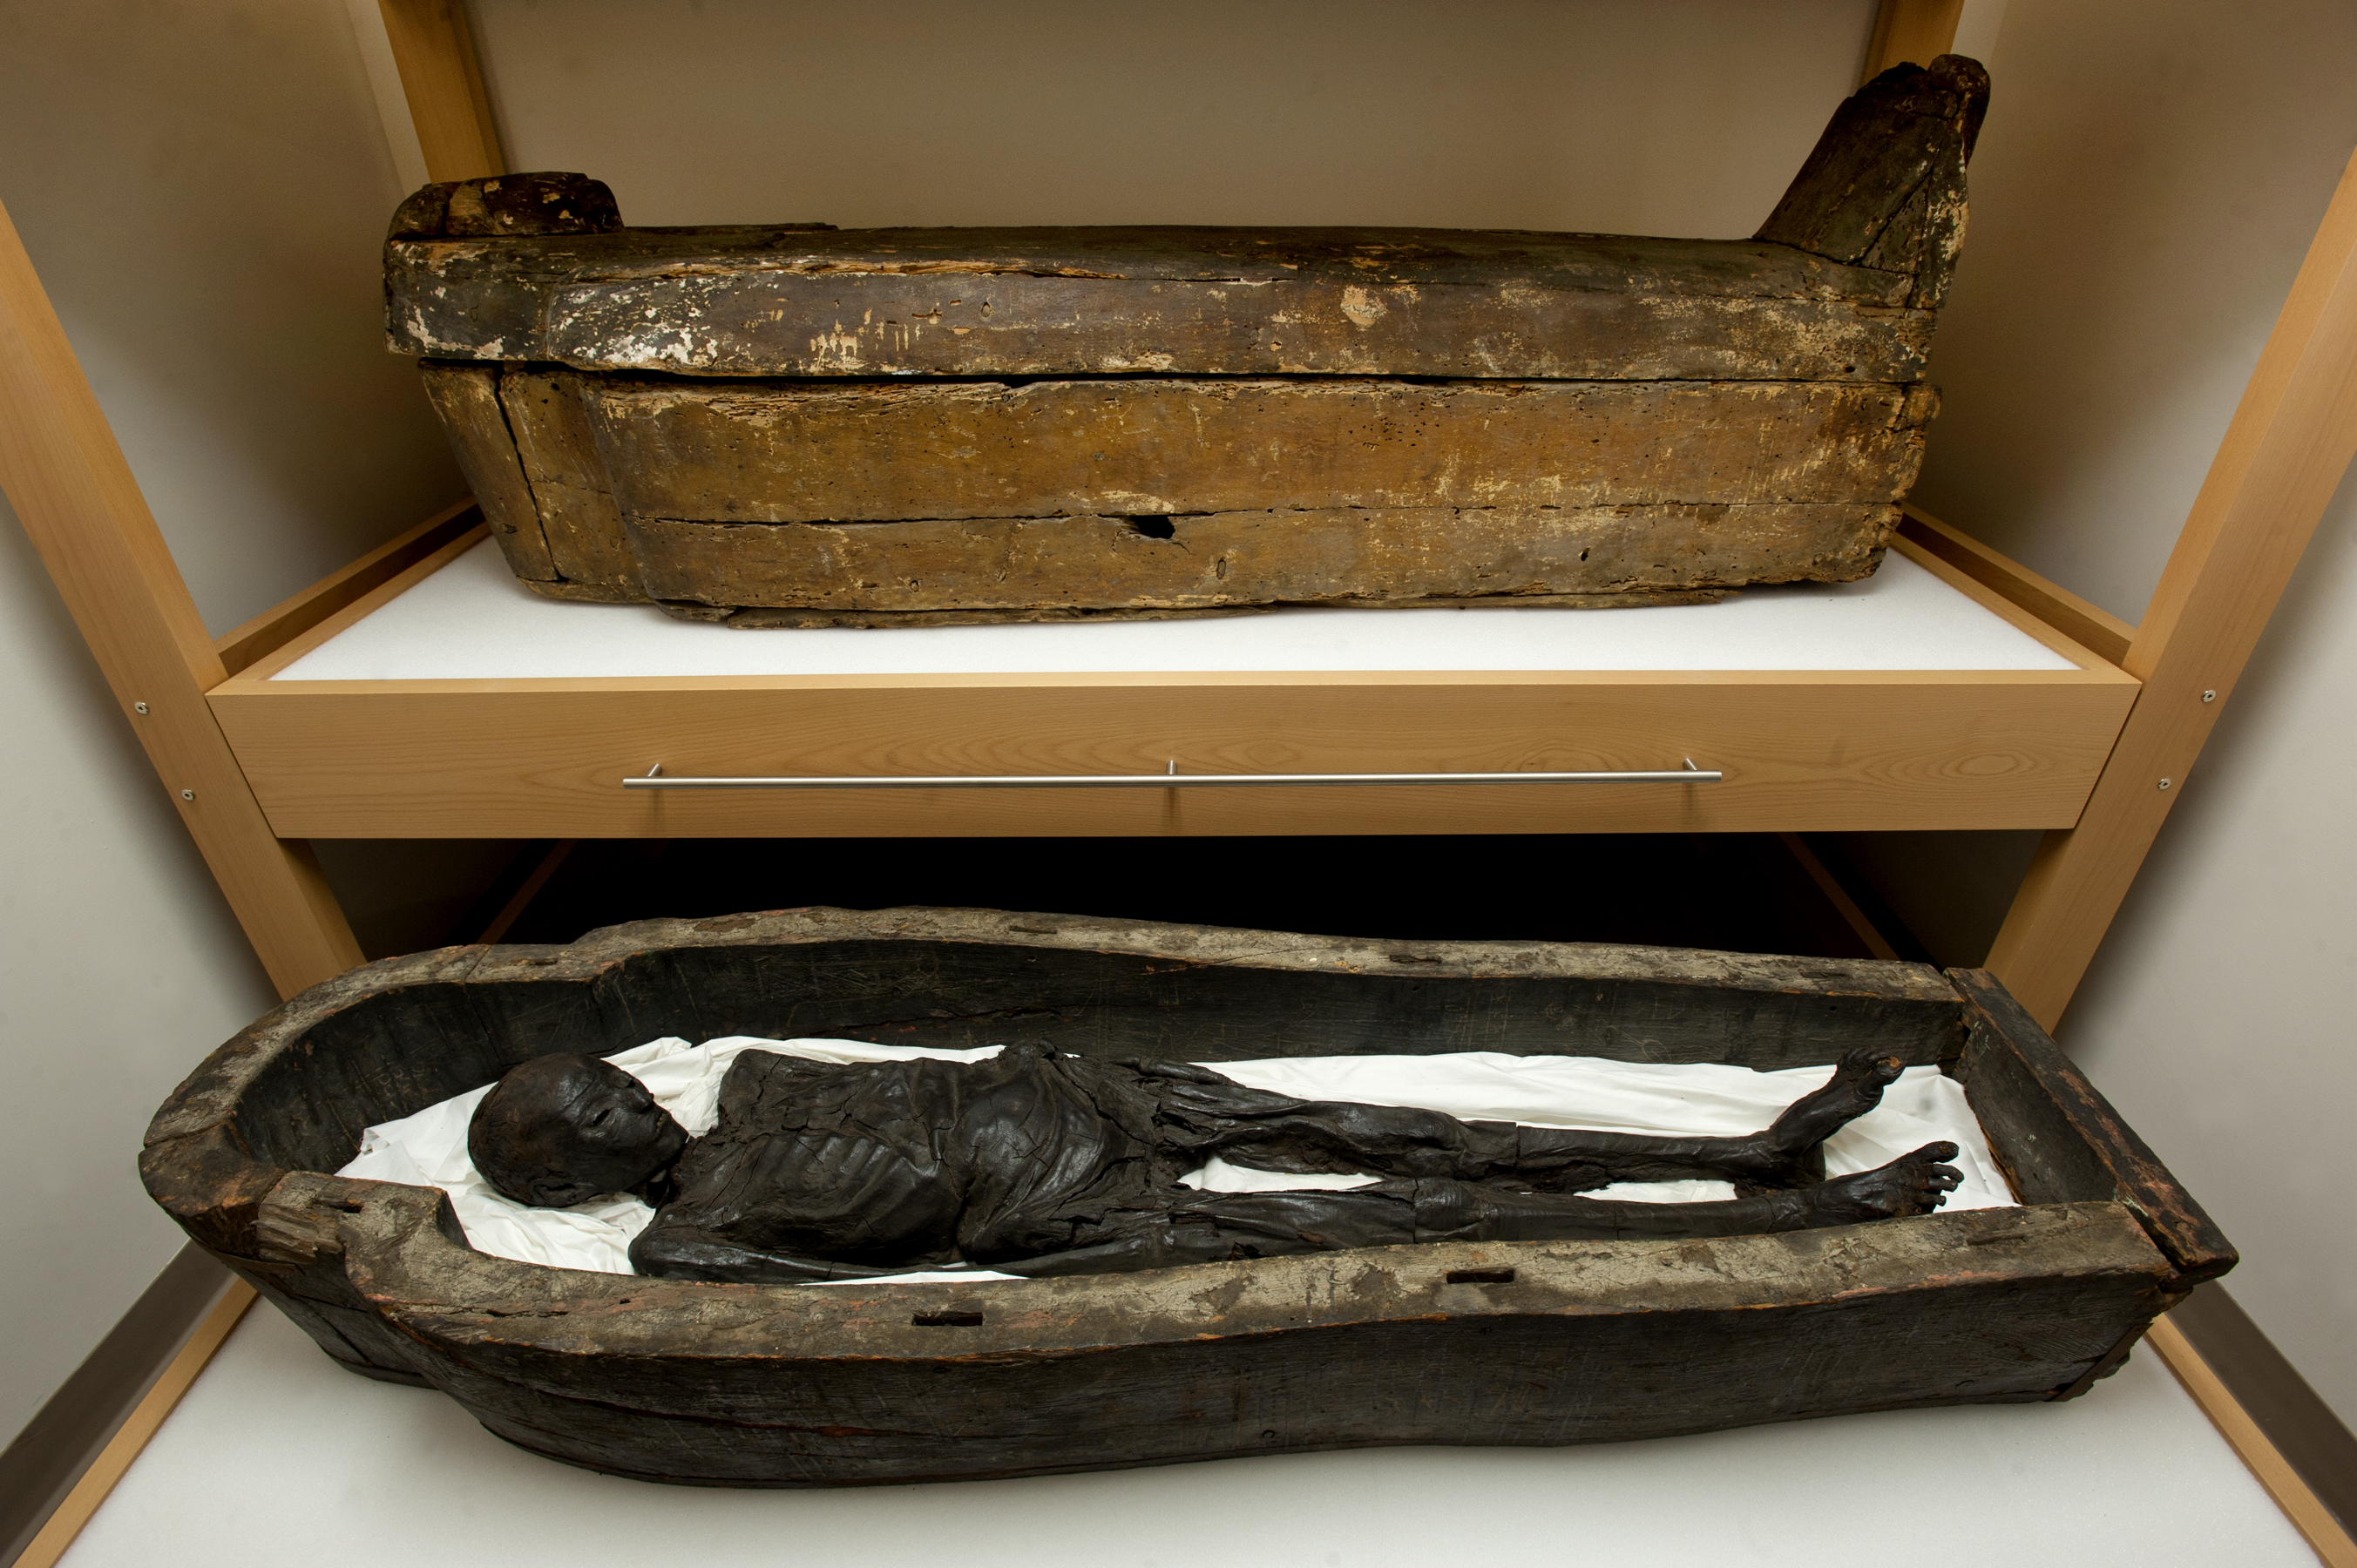 Two mummies were kept at Tulane Stadium for 20 years. (Courtesy of Tulane University)